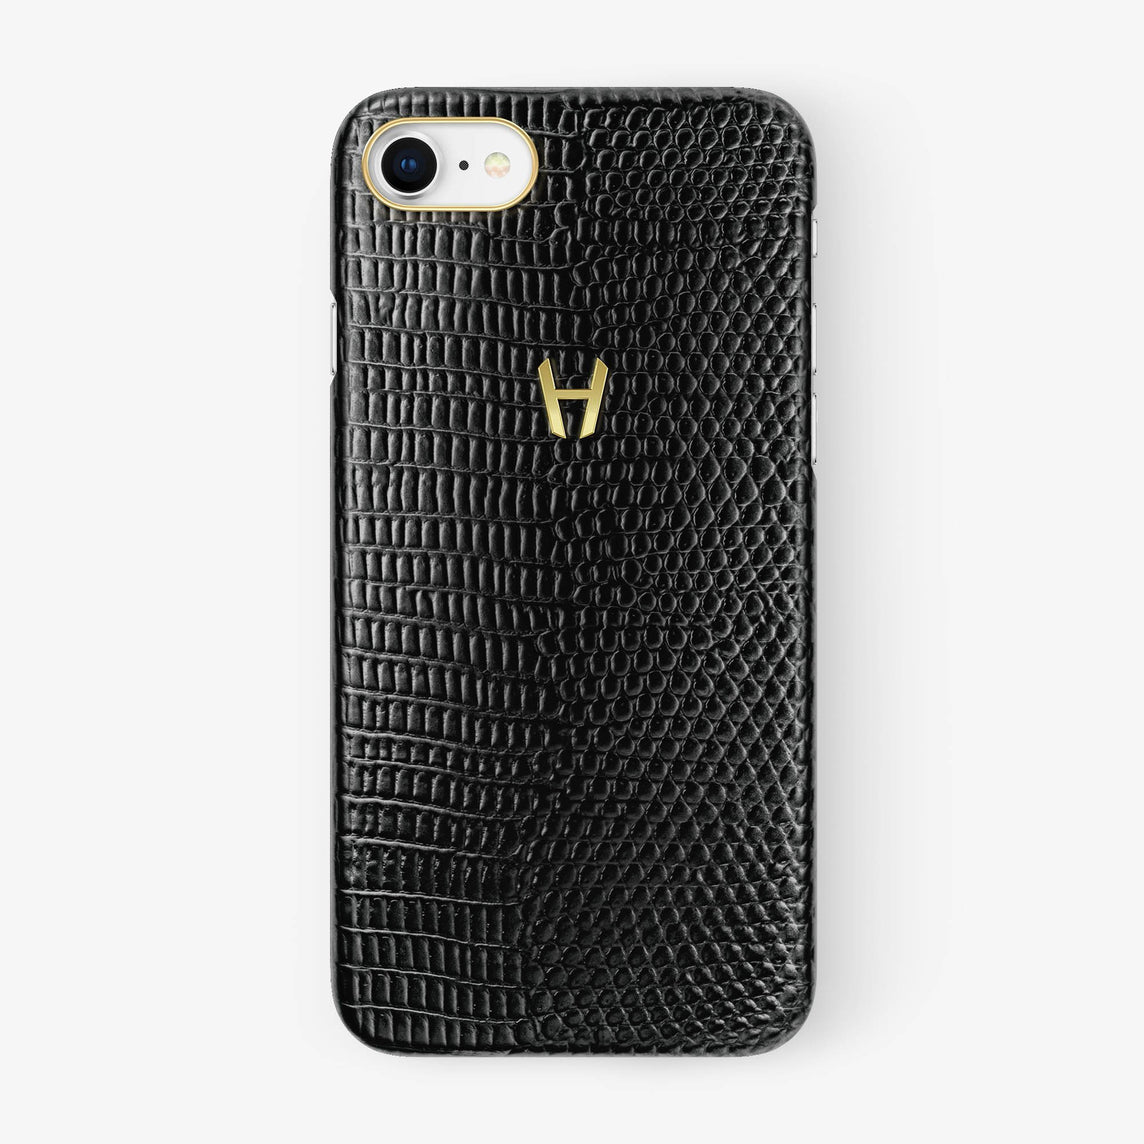 Black Lizard iPhone Case for iPhone 7/8 finishing yellow gold - Hadoro Luxury Cases